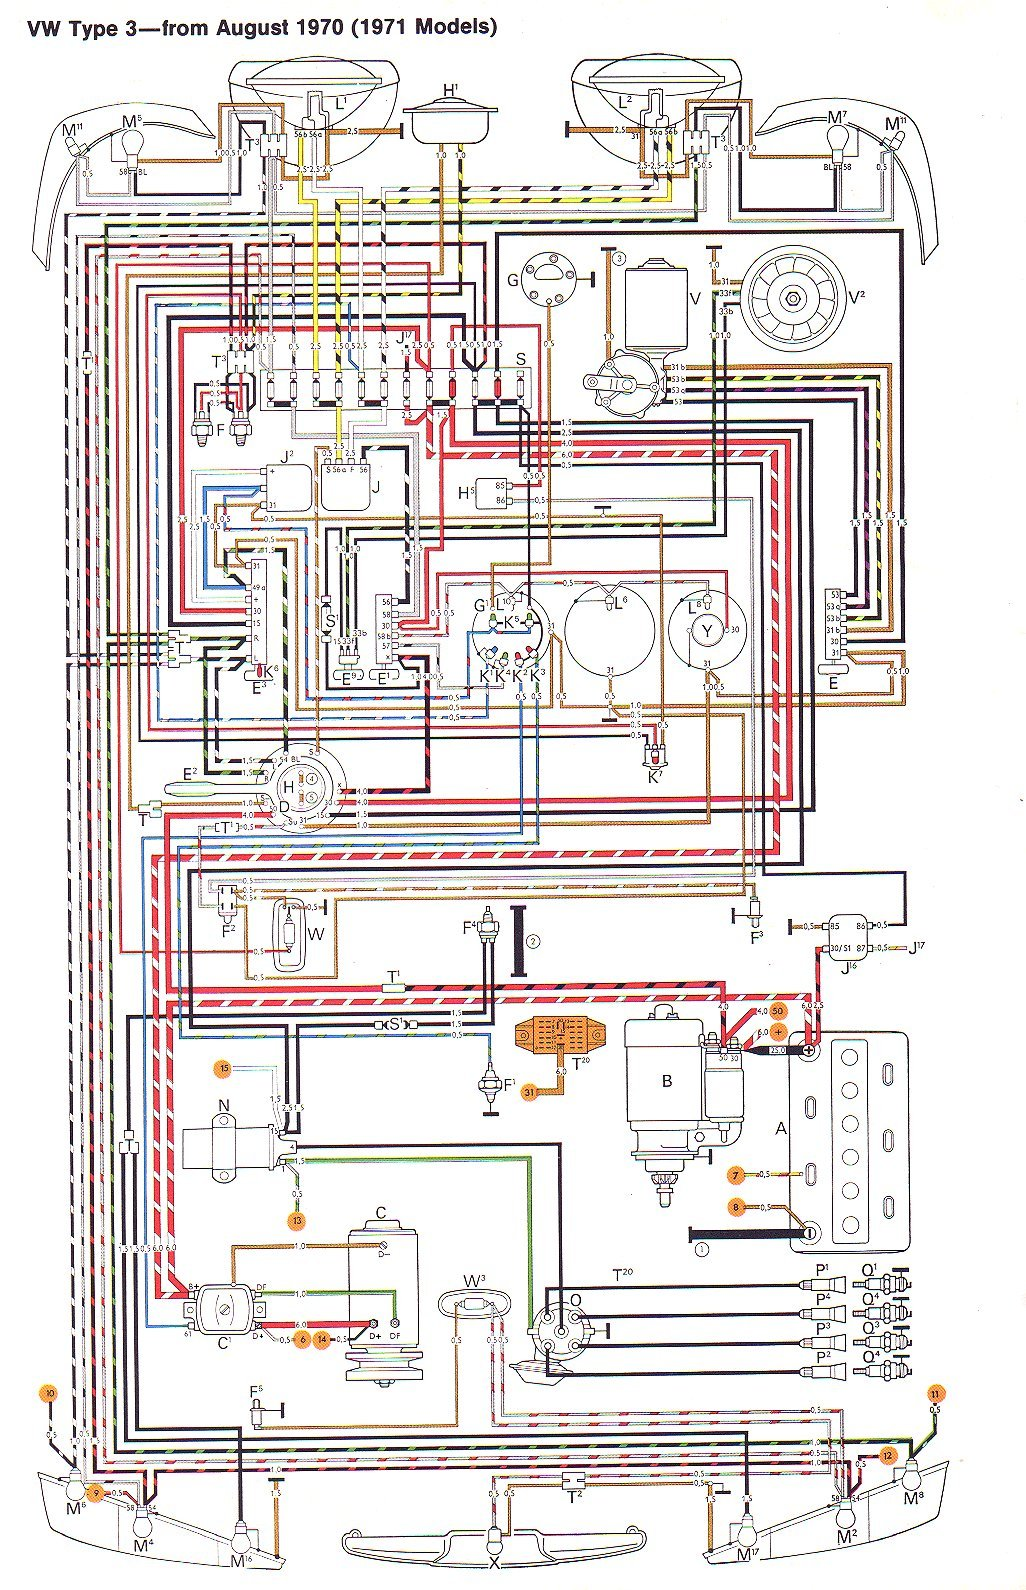 wiring diagram for 1971 vw beetle the wiring diagram volkswagen wiring diagrams volkswagen wiring diagrams for wiring diagram